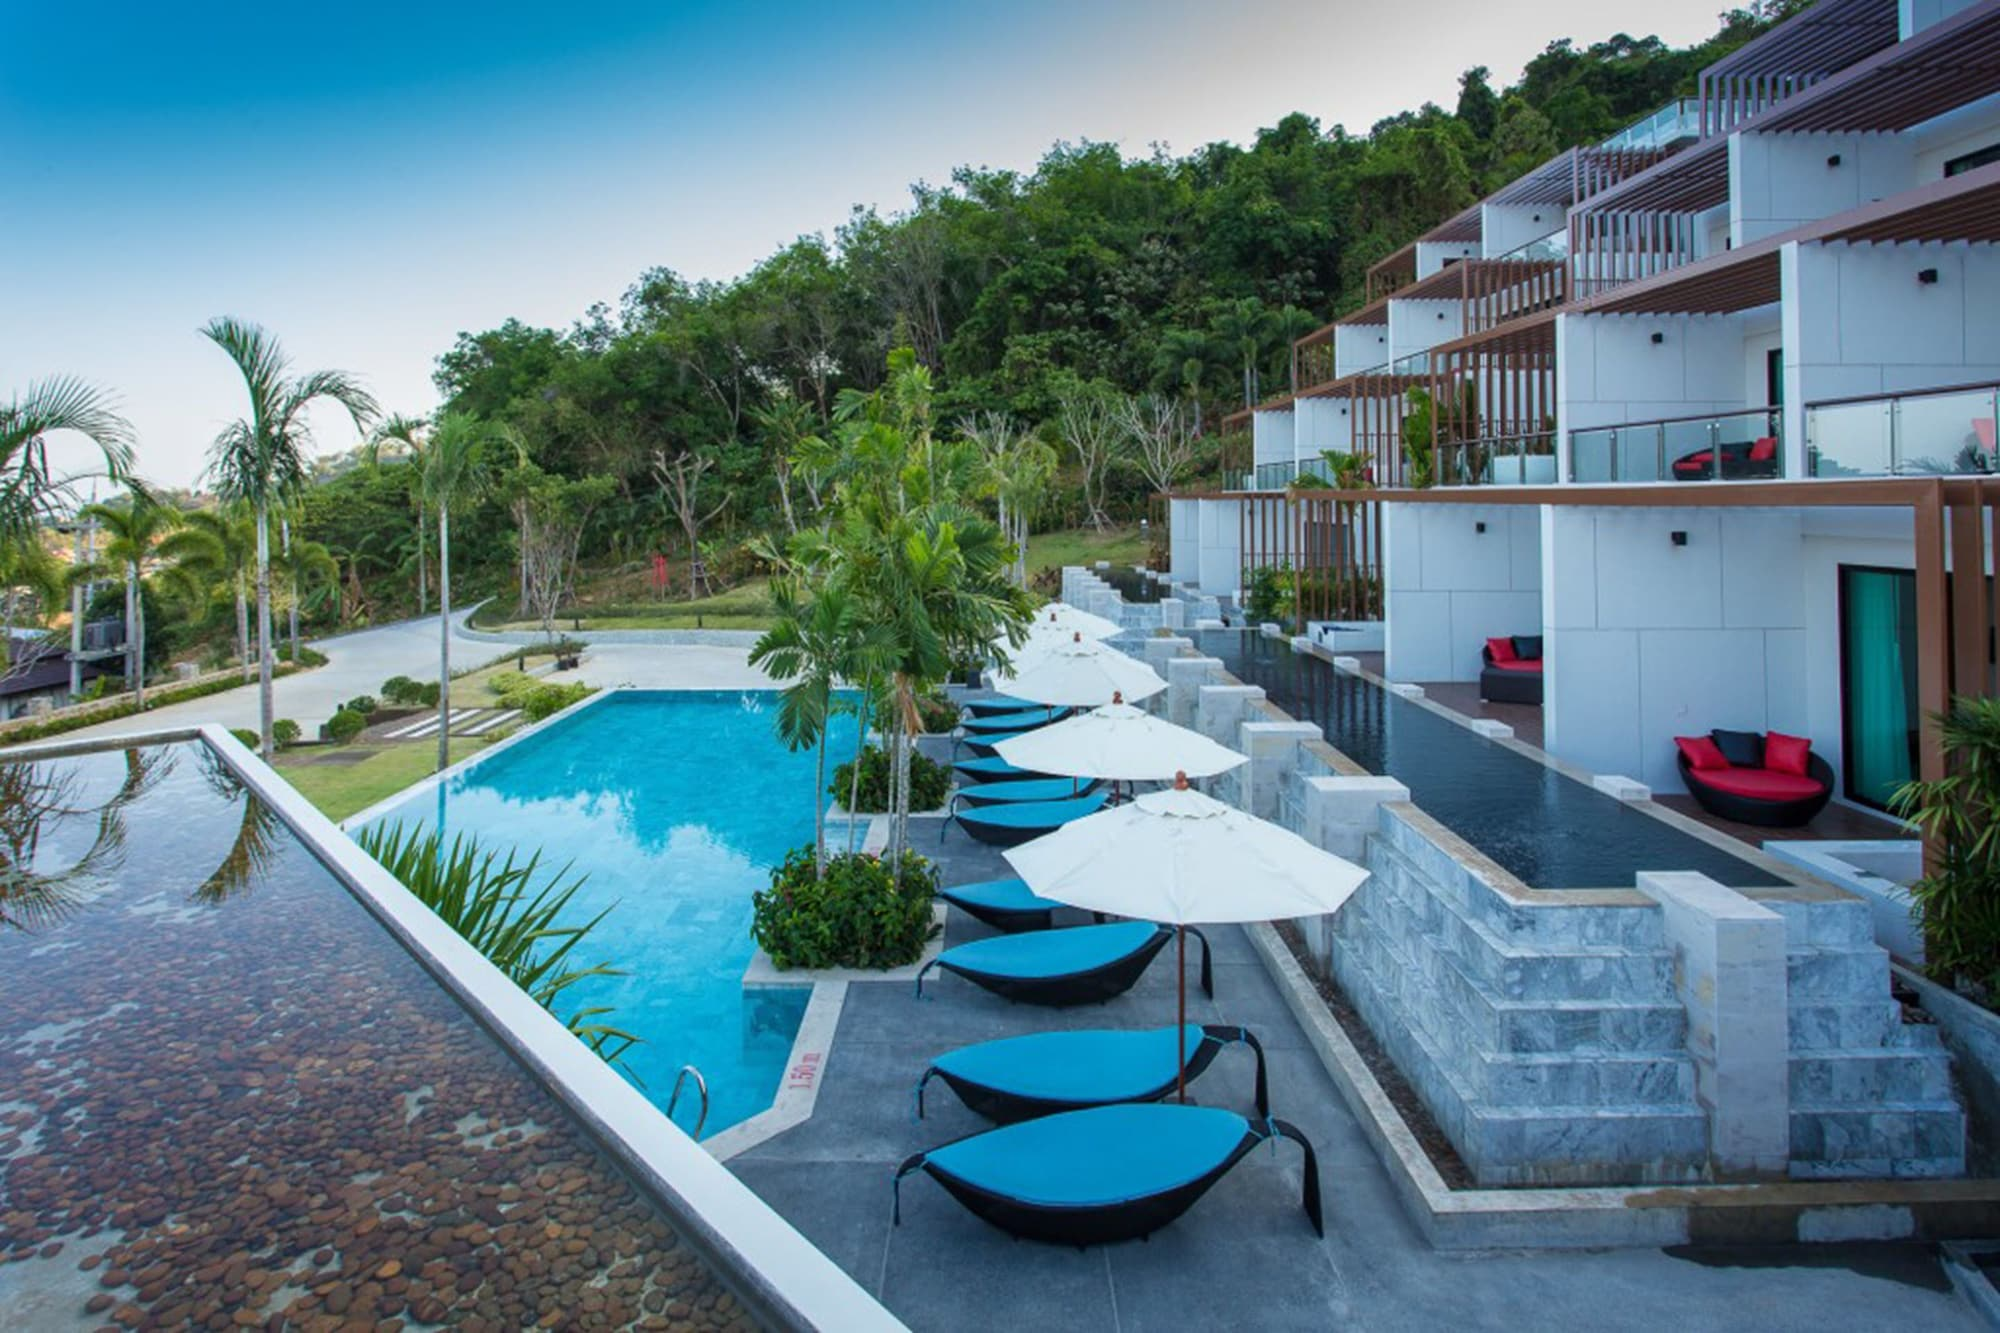 Chalong Chalet Resort & Longstay, Pulau Phuket